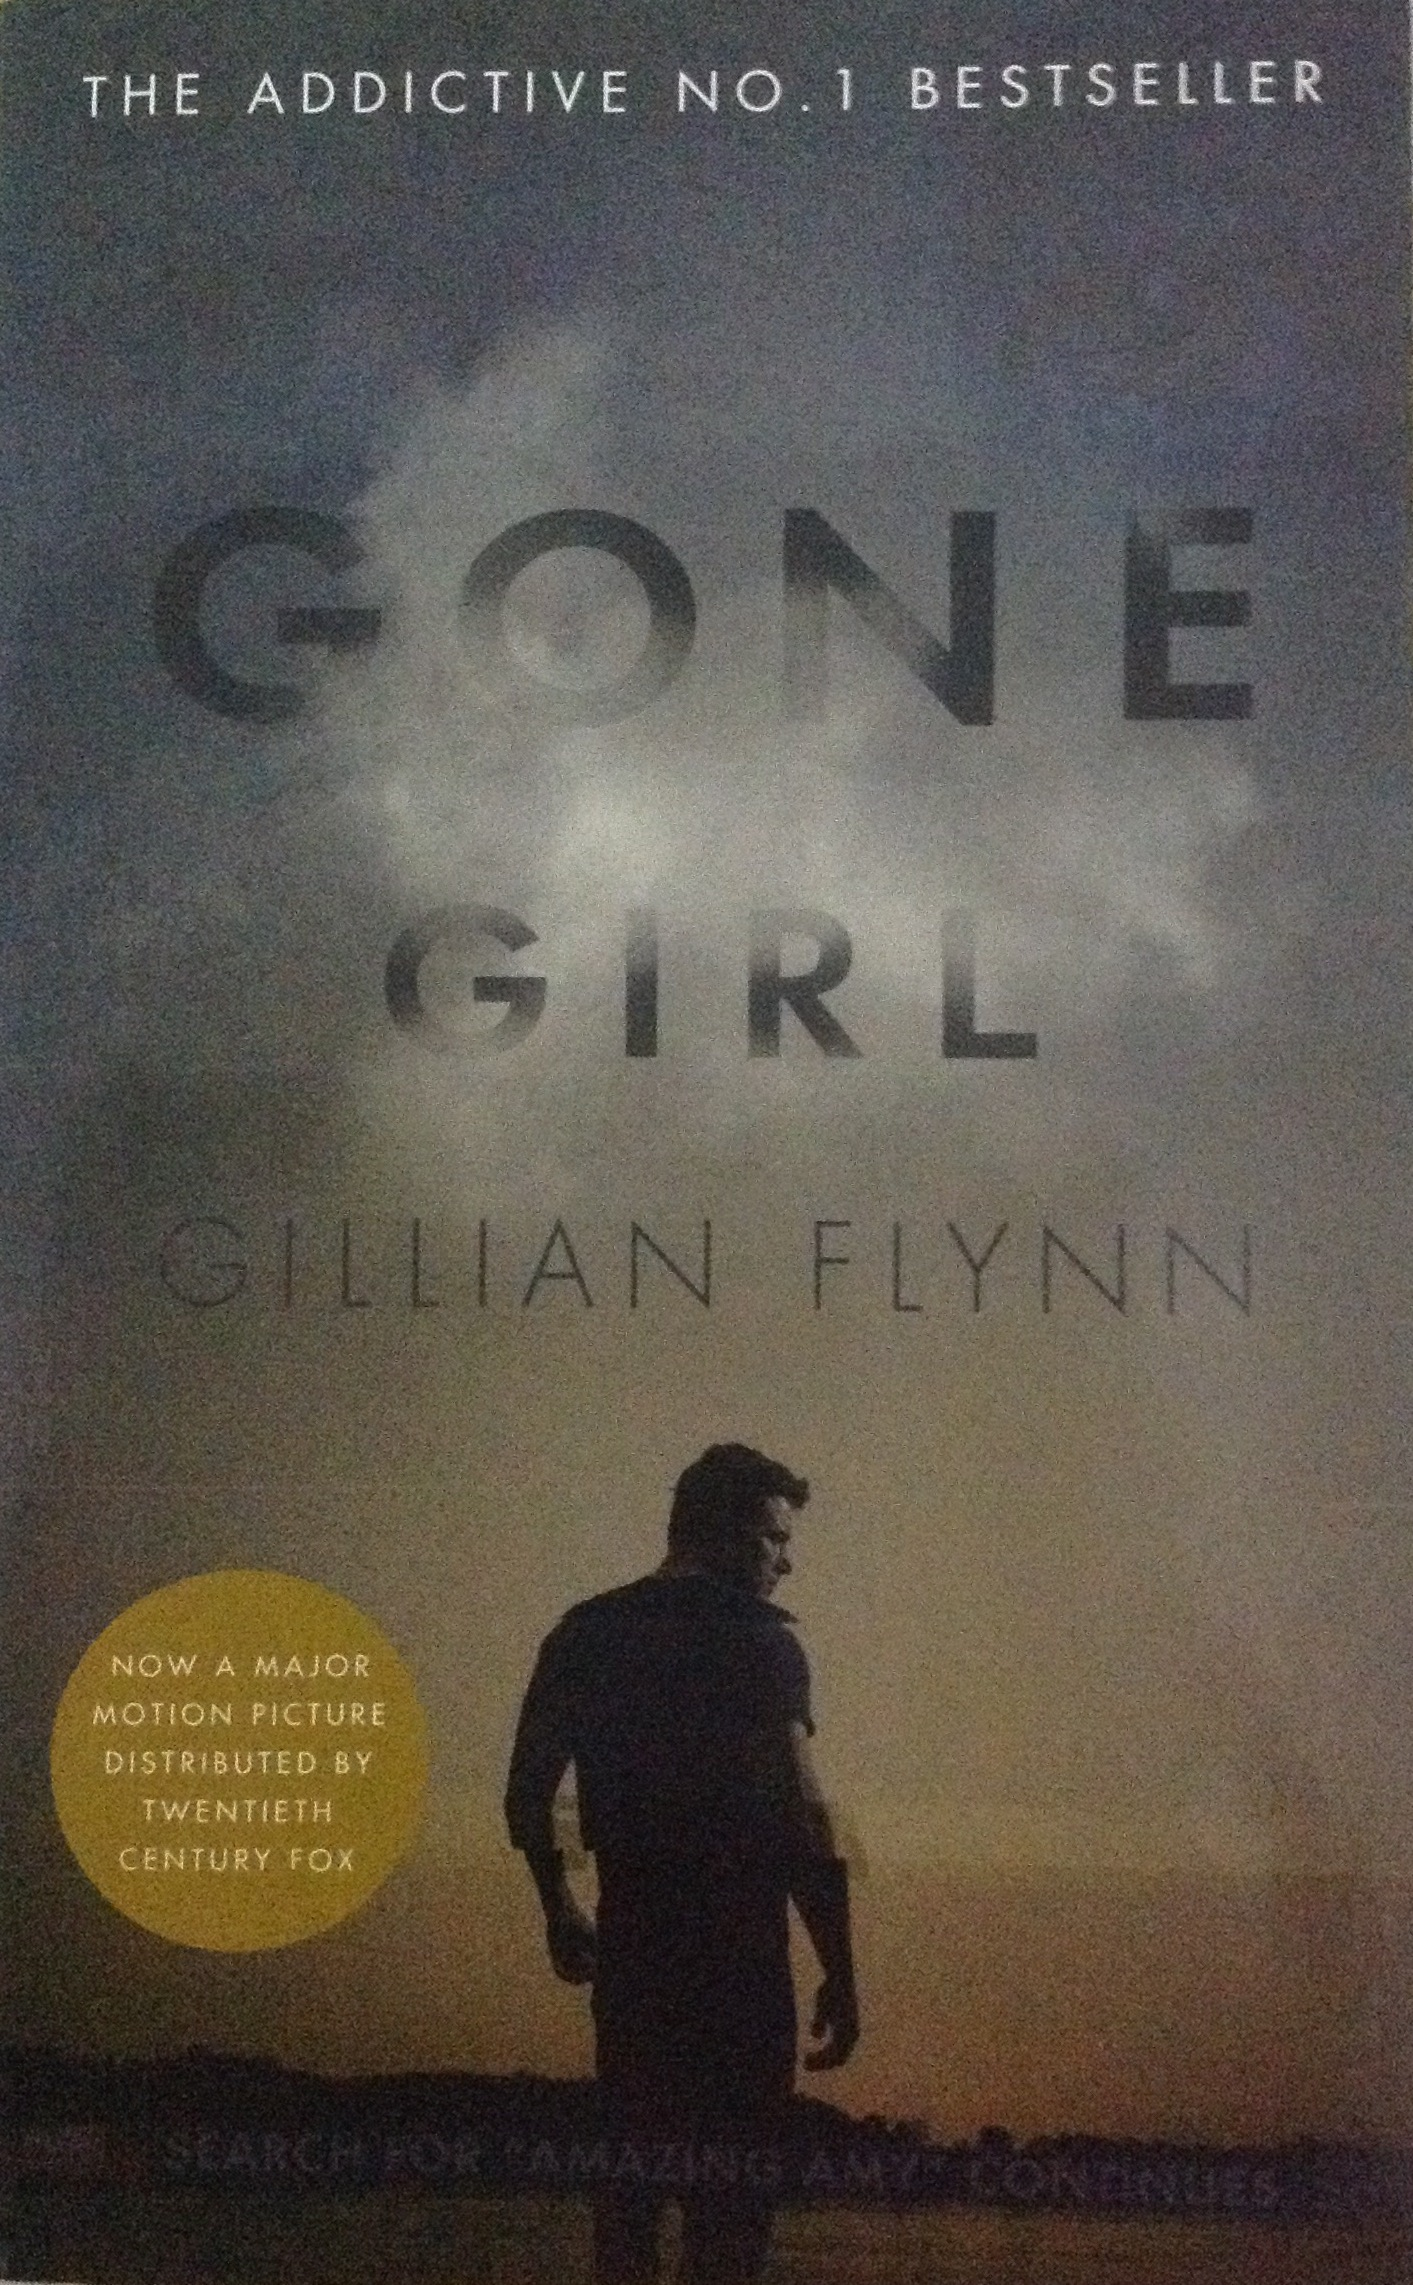 'Gone Girl' by Gillian Flynn